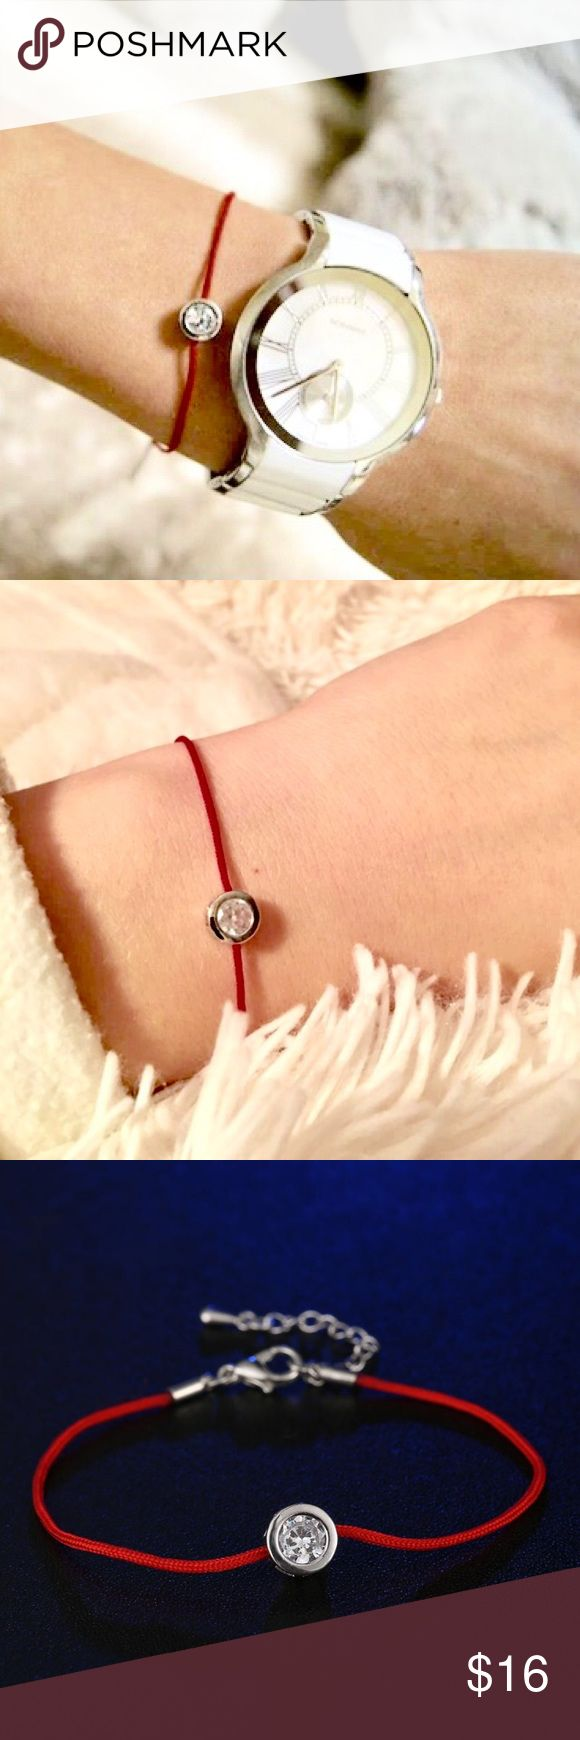 Fashion Red Bracelet with Diamond Fashion Red Cord Bracelet with CZ Diamond Sliver Plated Bracelet. One white, one red and one pink! Get two pieces for $25 Jewelry Bracelets